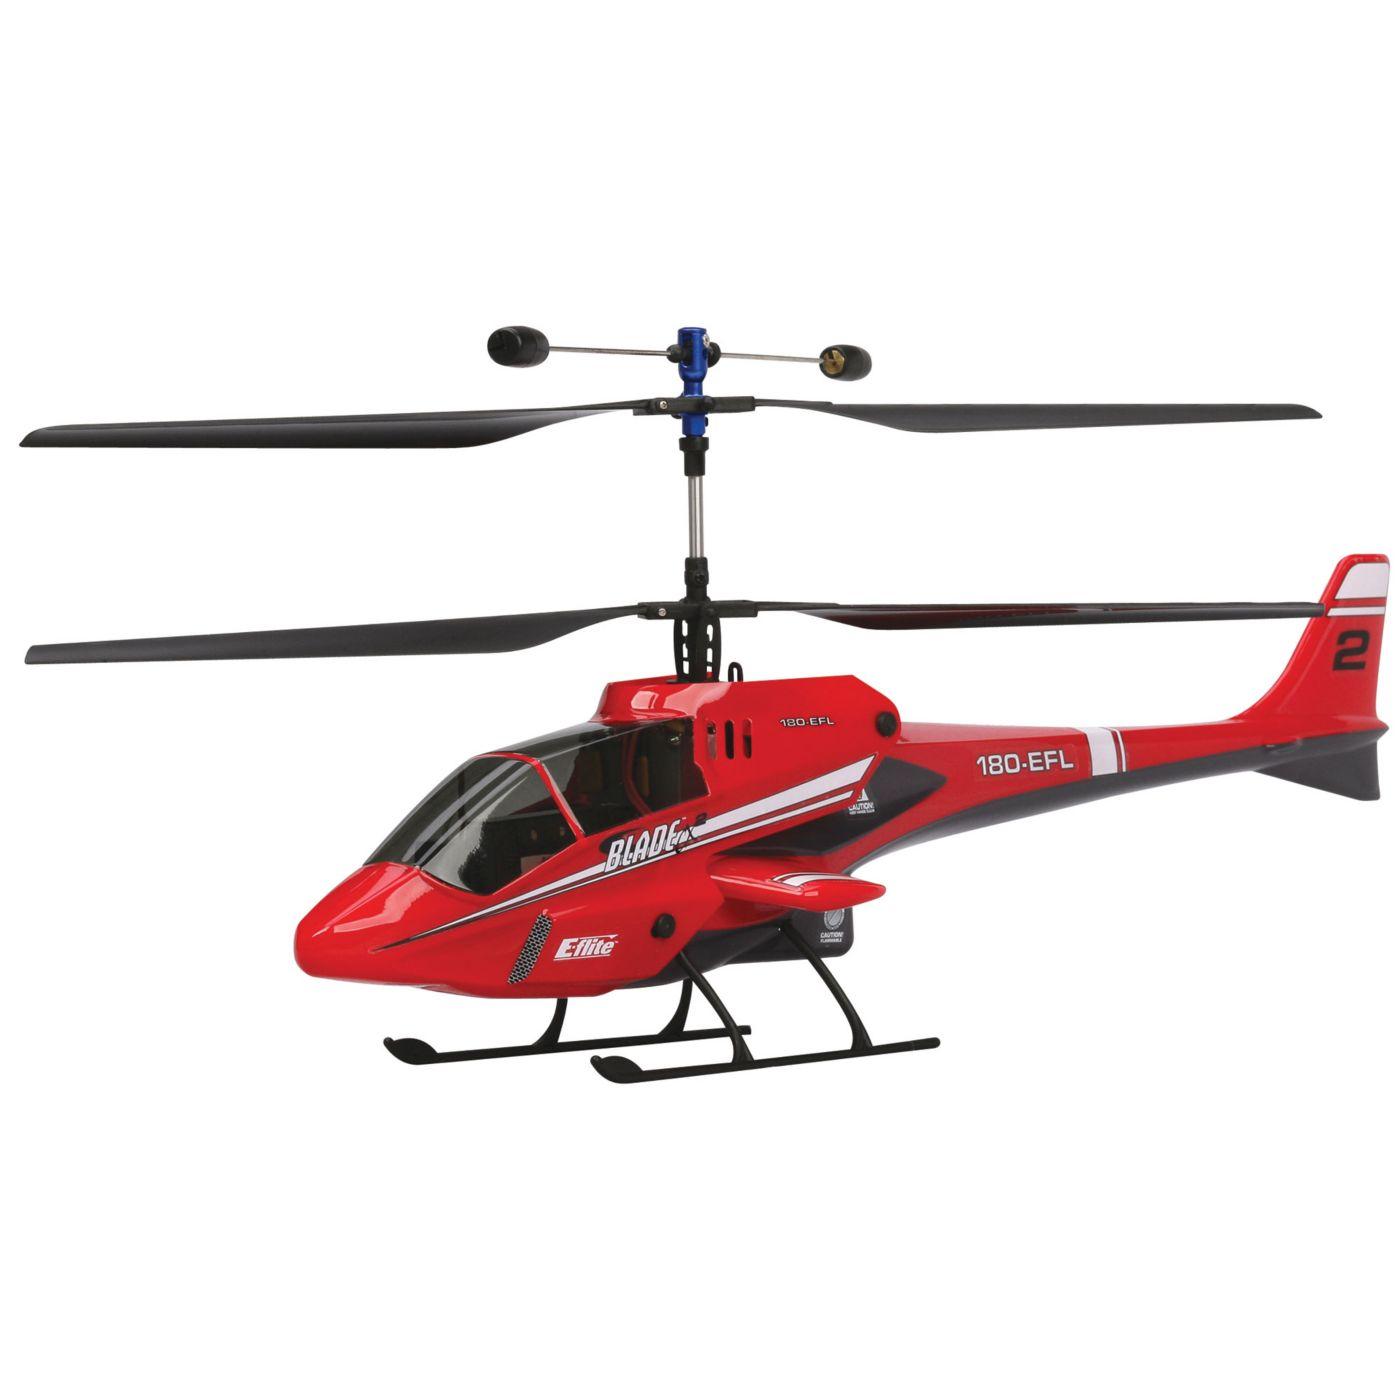 Image for Blade CX2 RTF Electric Coaxial Micro Helicopter from HorizonHobby  sc 1 st  Horizon Hobby & Blade CX2 RTF Electric Coaxial Micro Helicopter | HorizonHobby